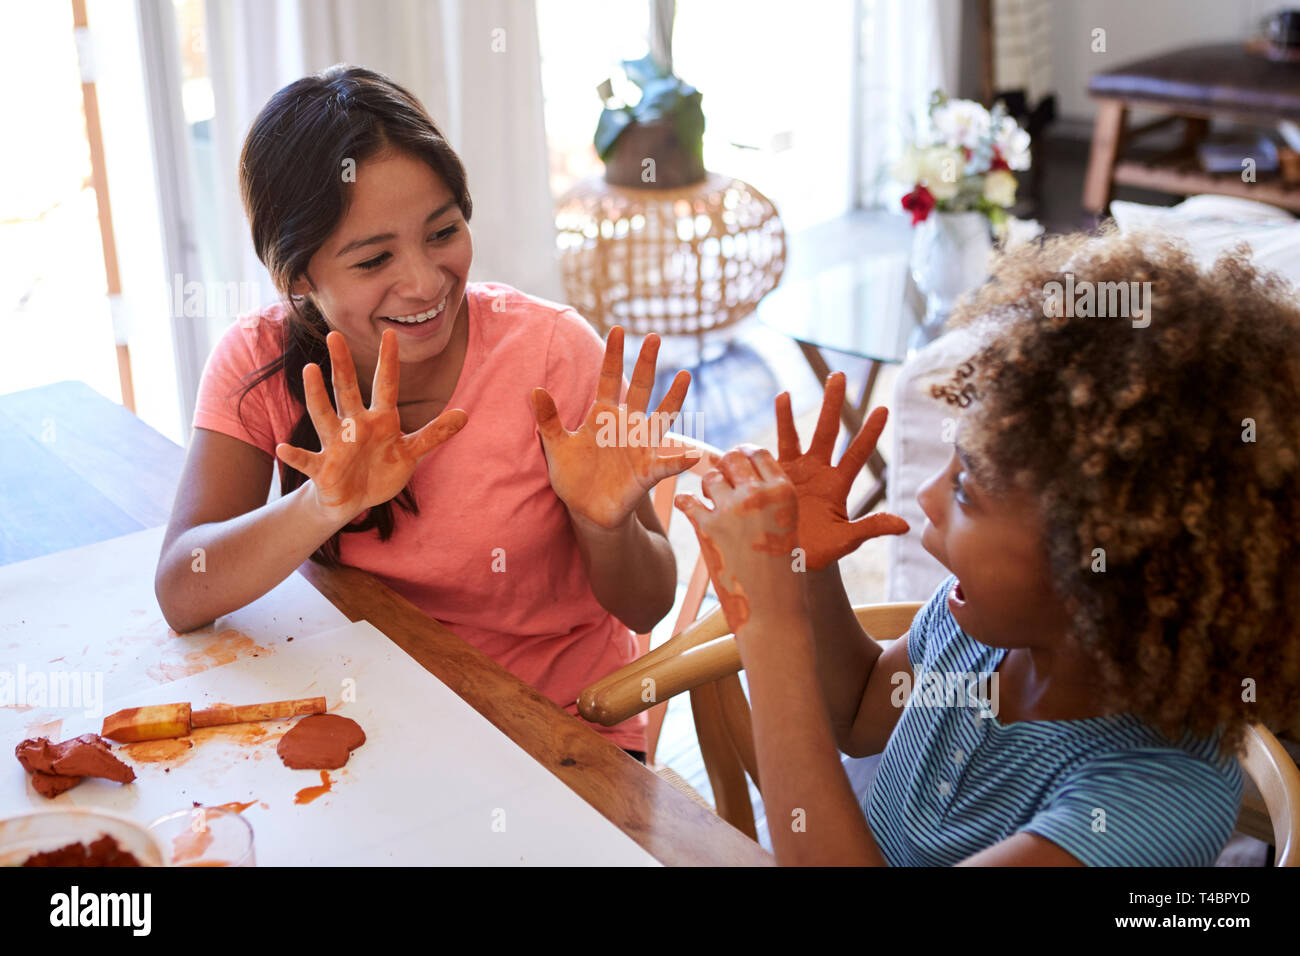 Two young teen and pre-teen girlfriends sitting at a table at home using modelling clay, showing each other their dirty hands, elevated view - Stock Image